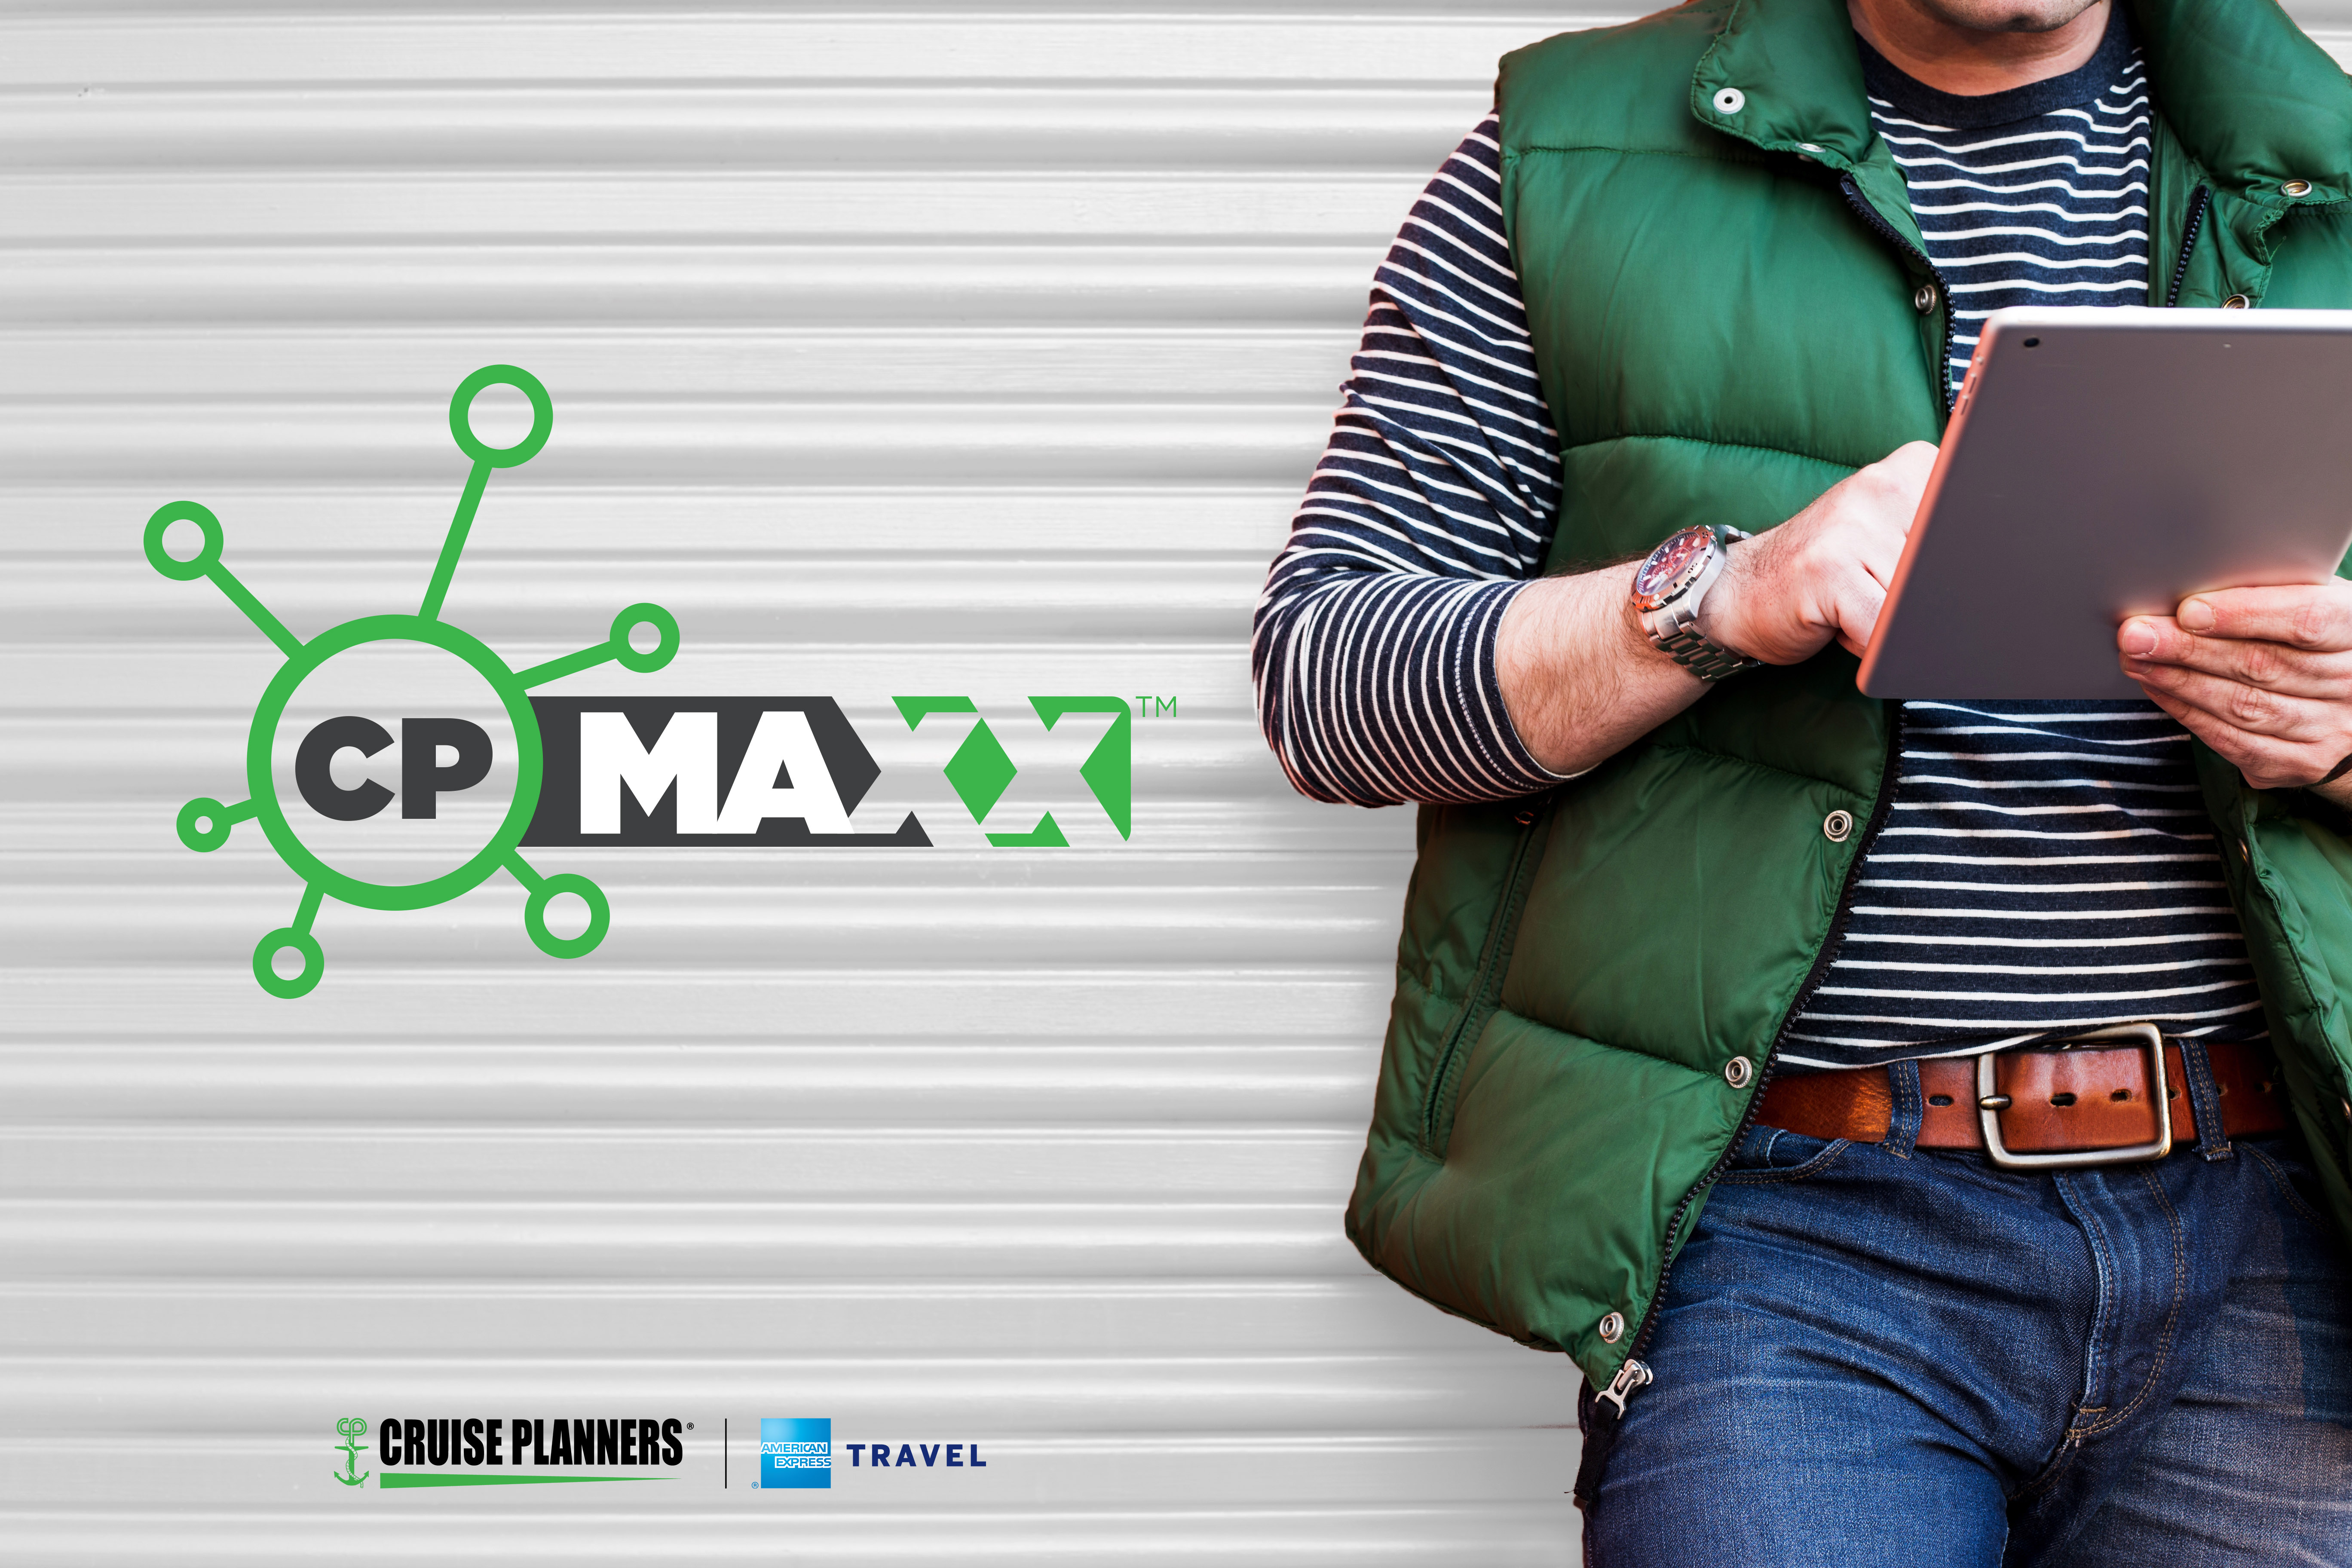 Cruise Planners 174 New Technology Sizzles With Cp Maxx Rollout